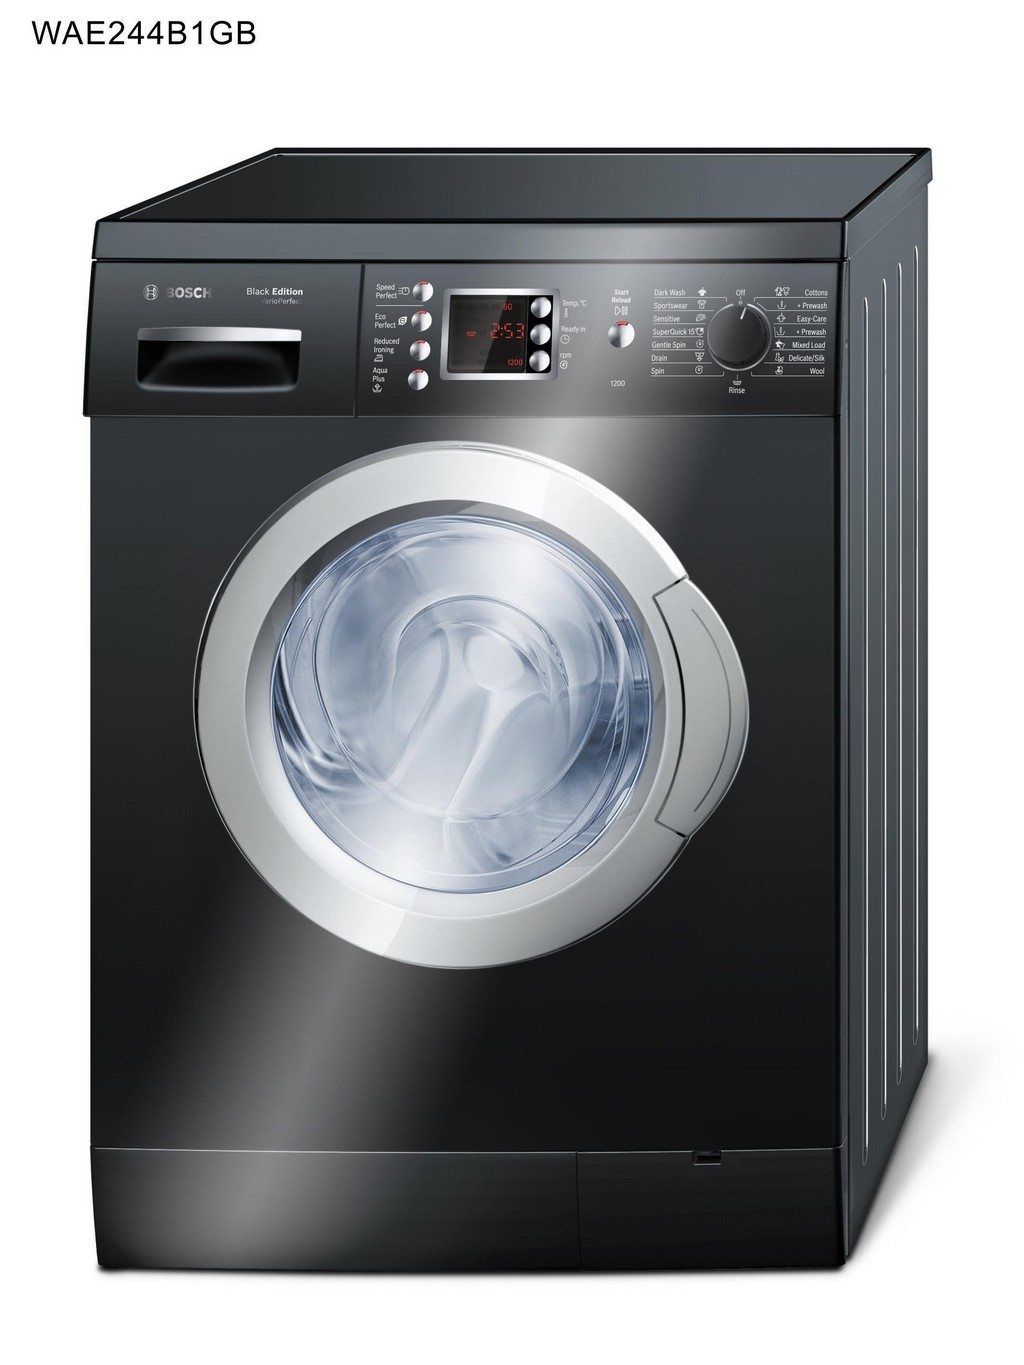 fisher and paykel washing machine, best front loader washing machine, siemens washing machine